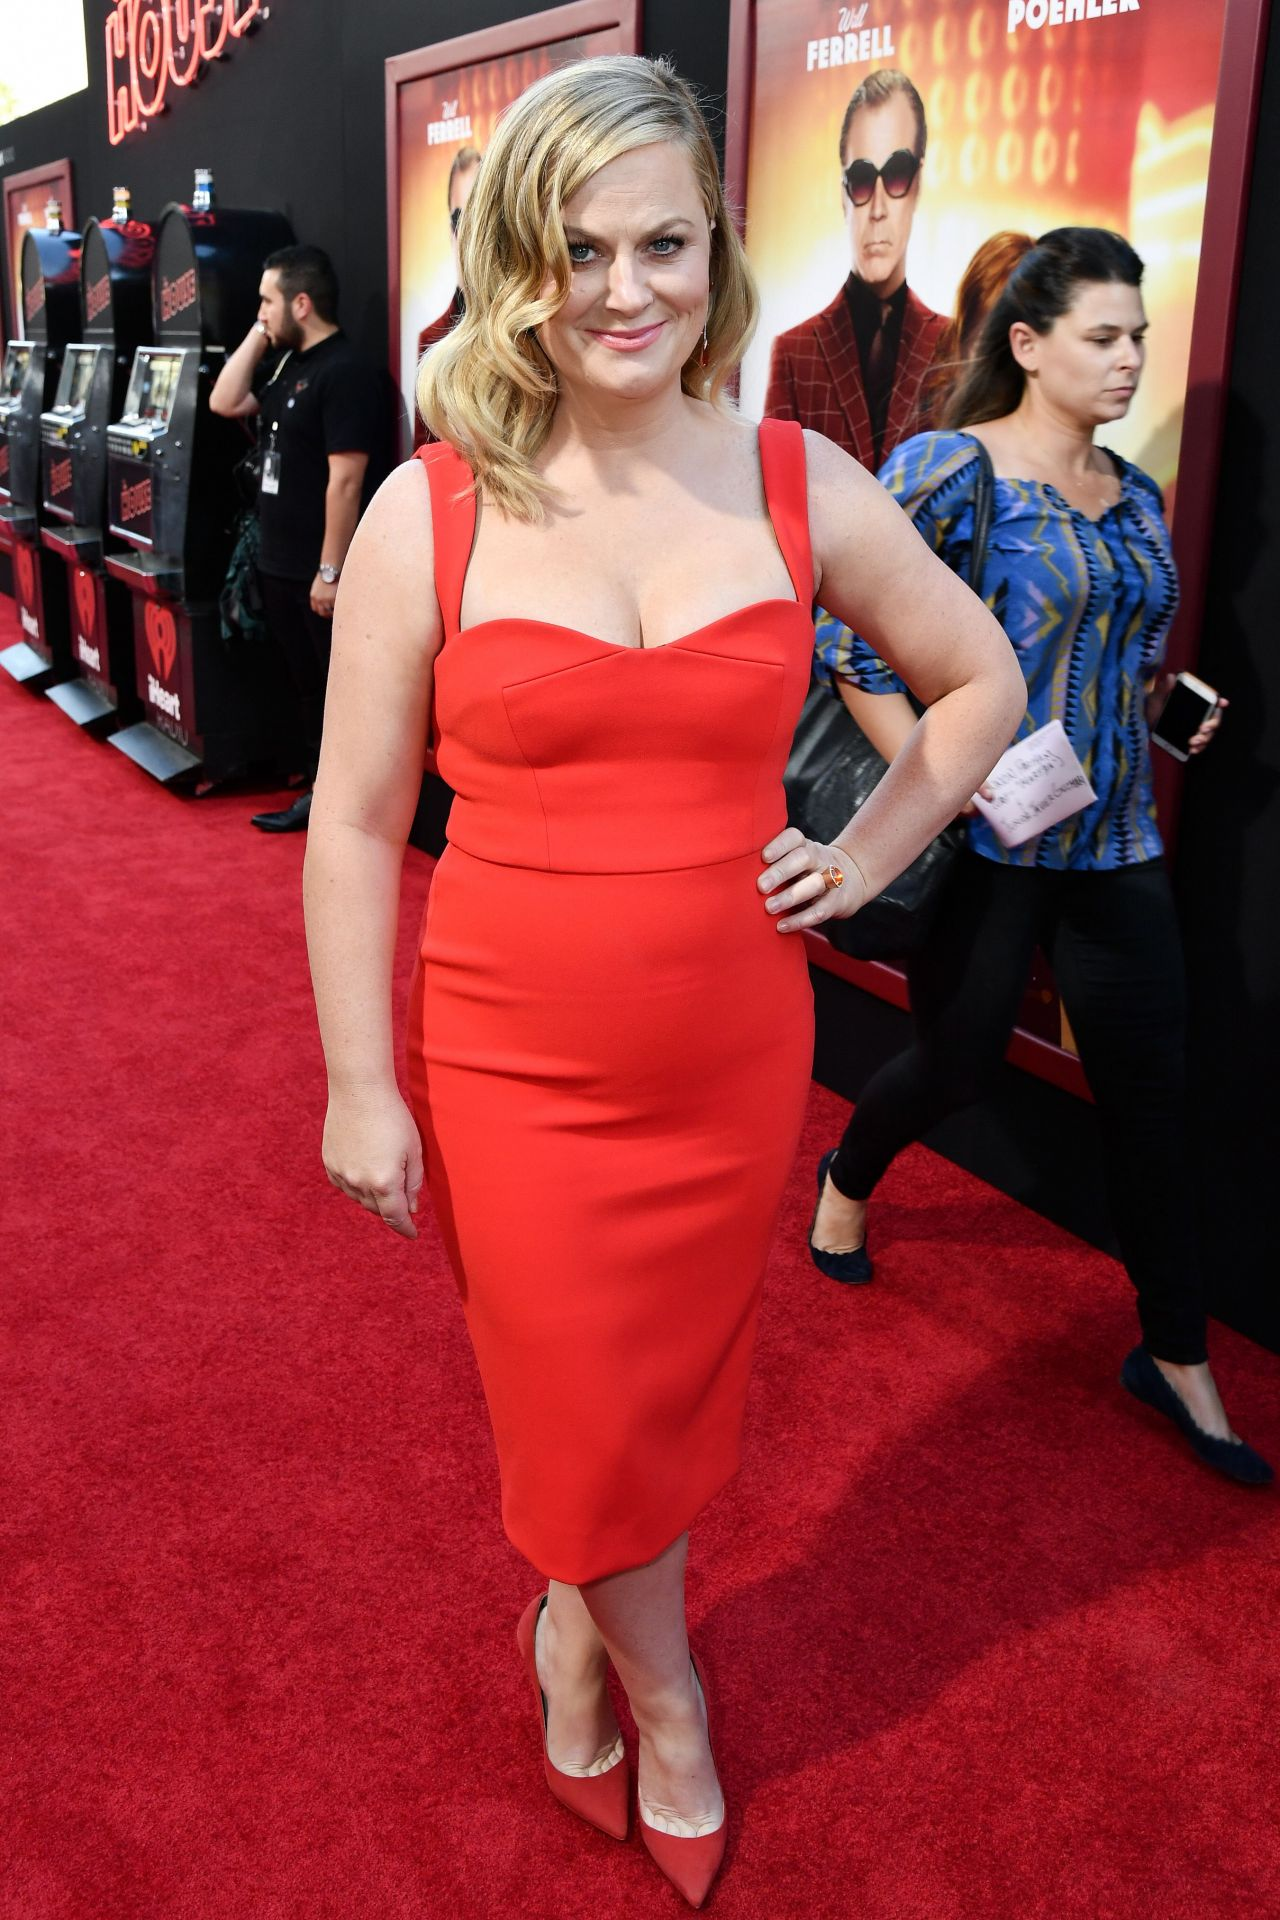 Amy Poehler Quot The House Quot Premiere In Hollywood 06 26 2017